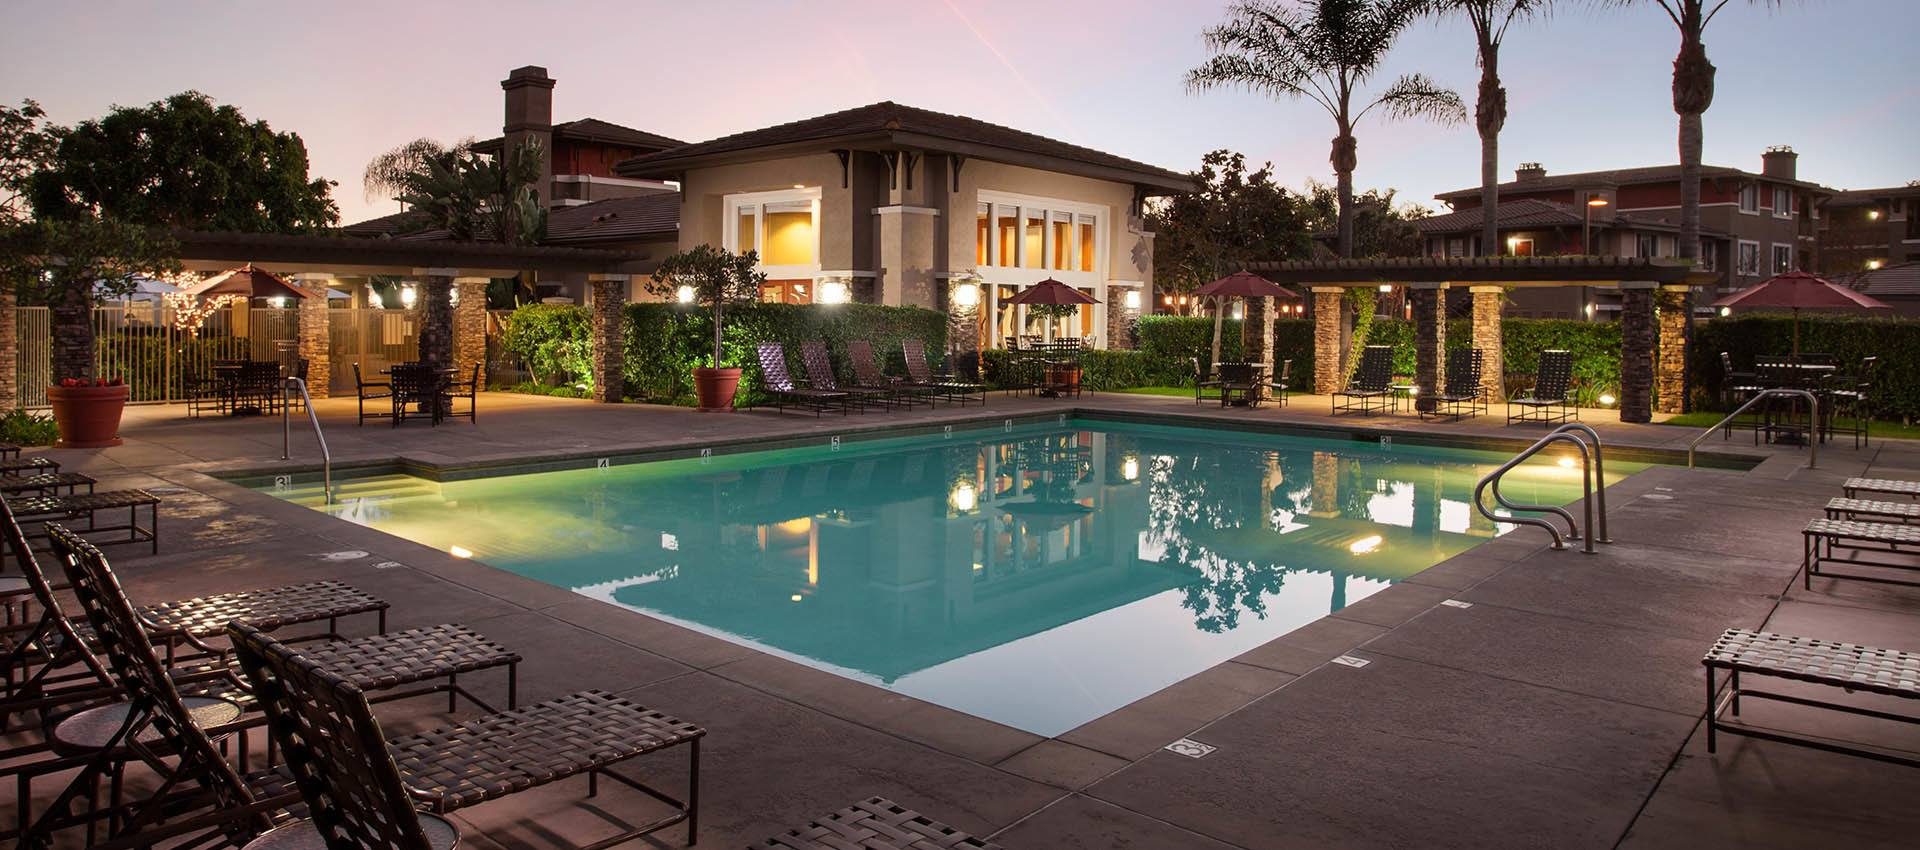 Expansive Pool Deck With Spa Amenities Gallery